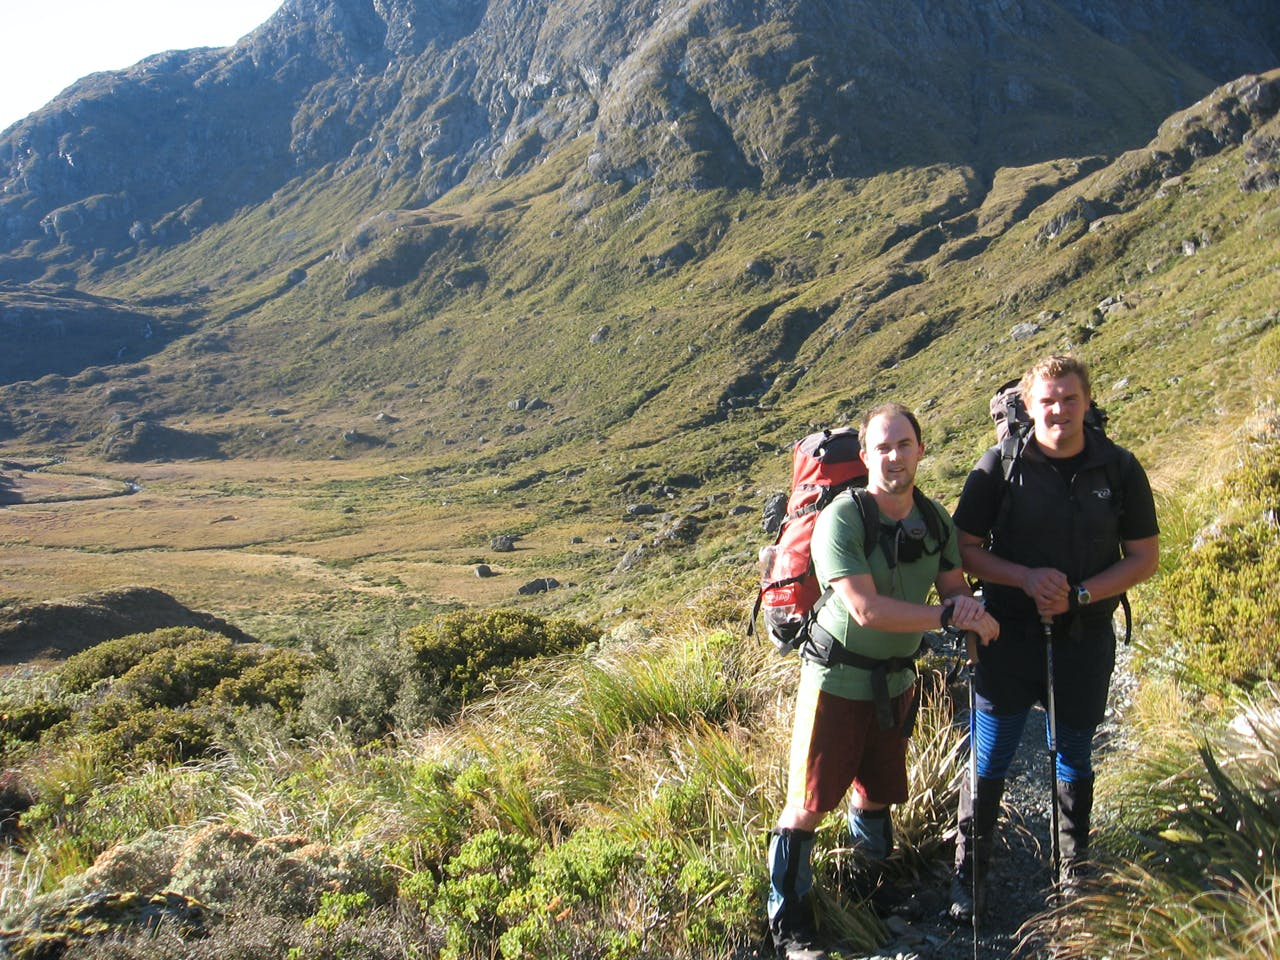 Nathan and Nigel Watson intend to climb 21 peaks over 2000m in height in 21 days